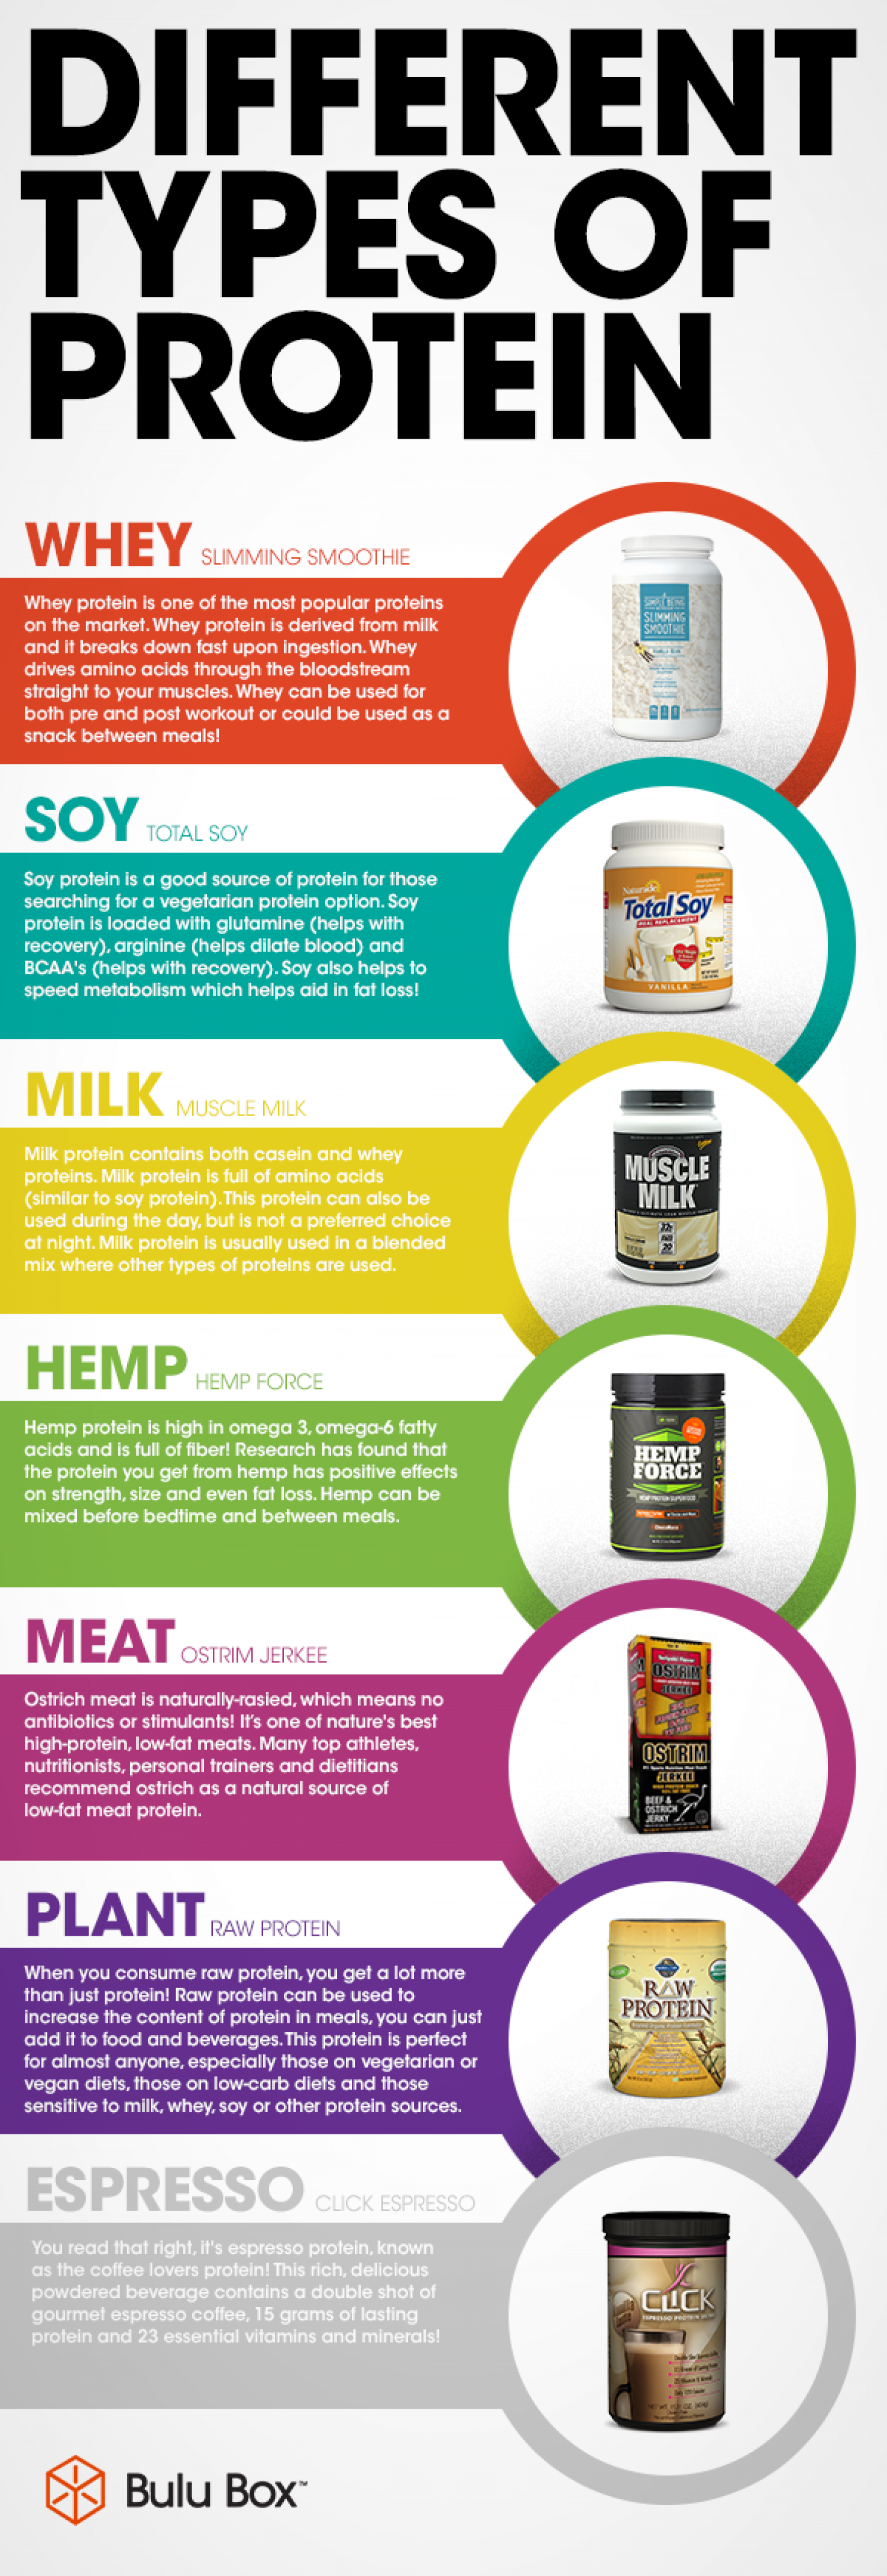 Benefits of Different Types of Protein